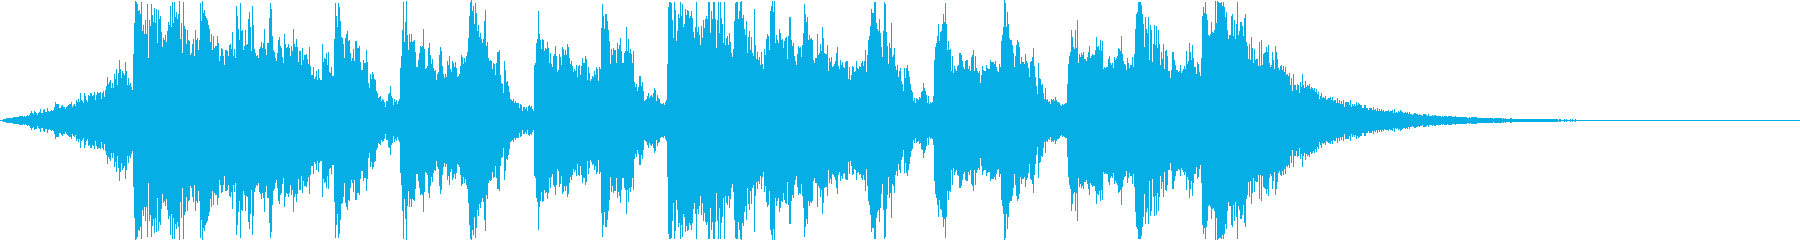 Comical and fun Halloween horror song d's reproduced waveform